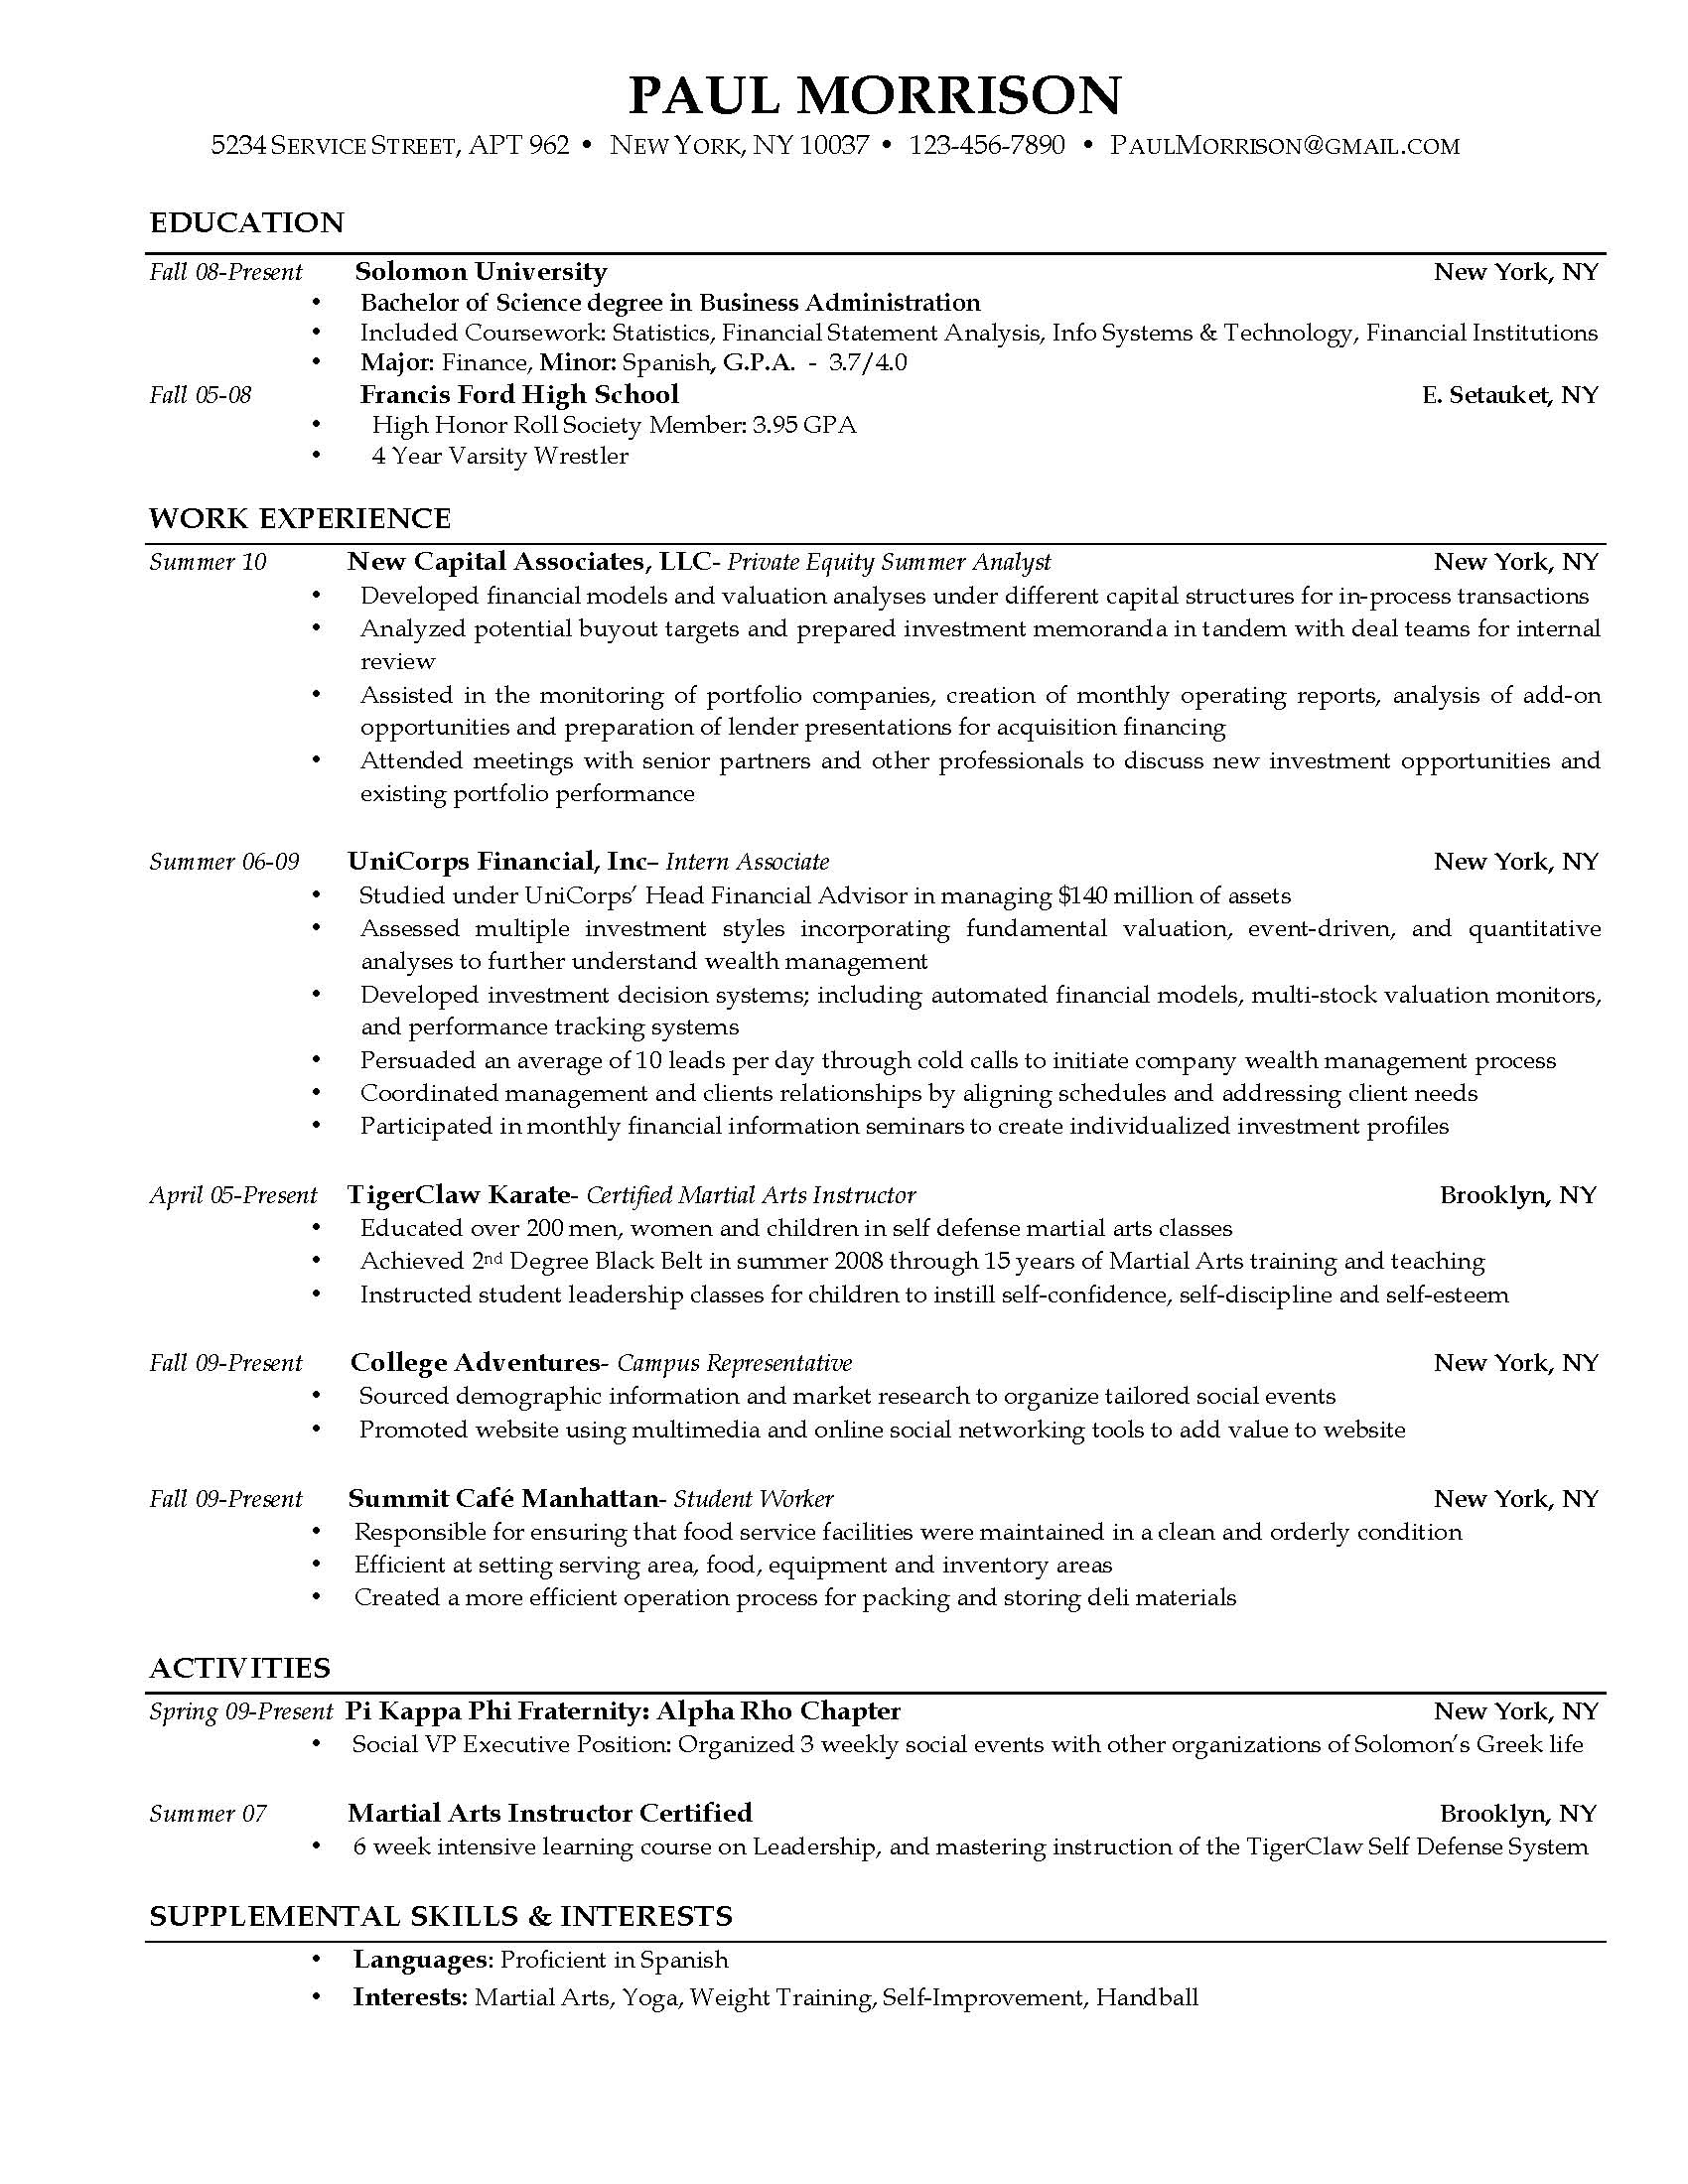 Download College Student Resumes | haadyaooverbayresort.com